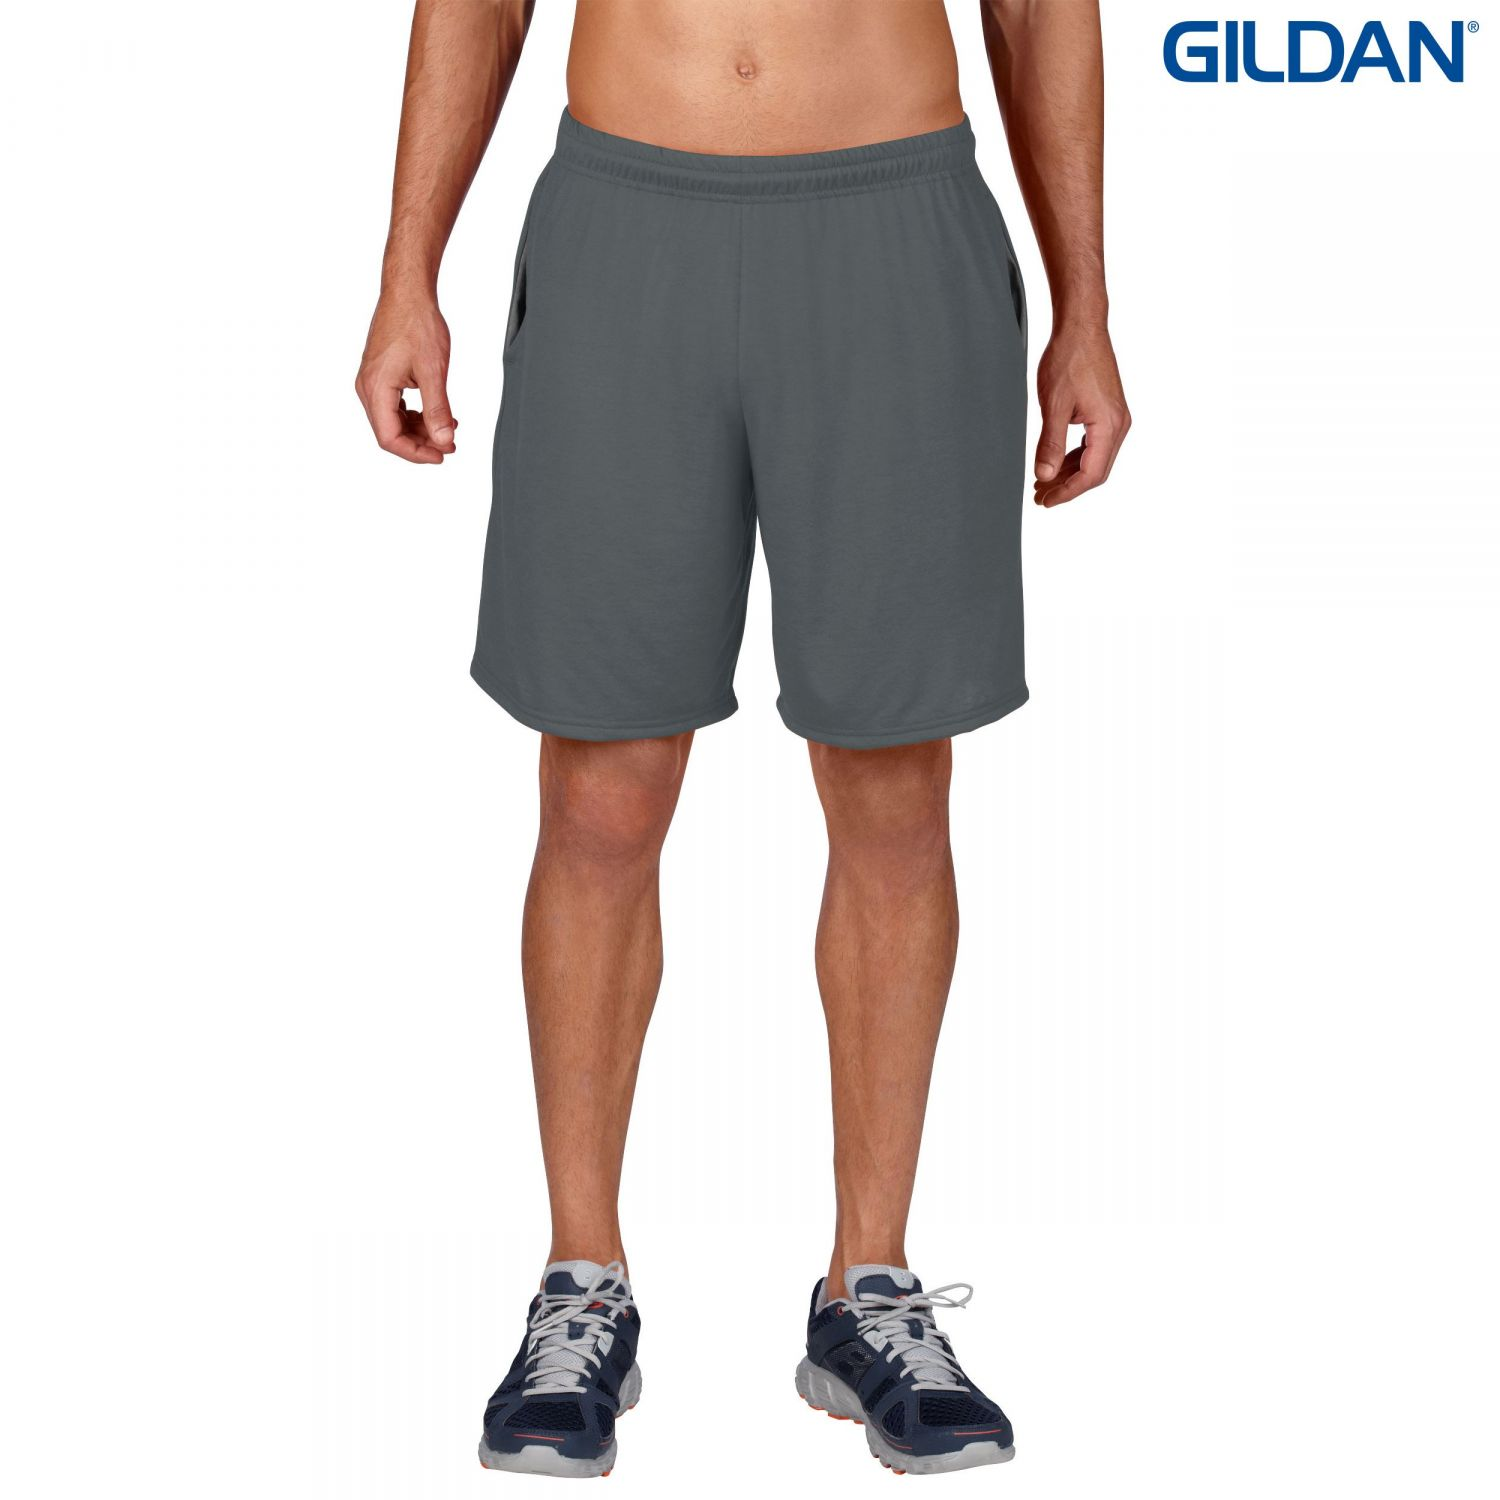 Gildan Performance Adult Shorts with Pockets